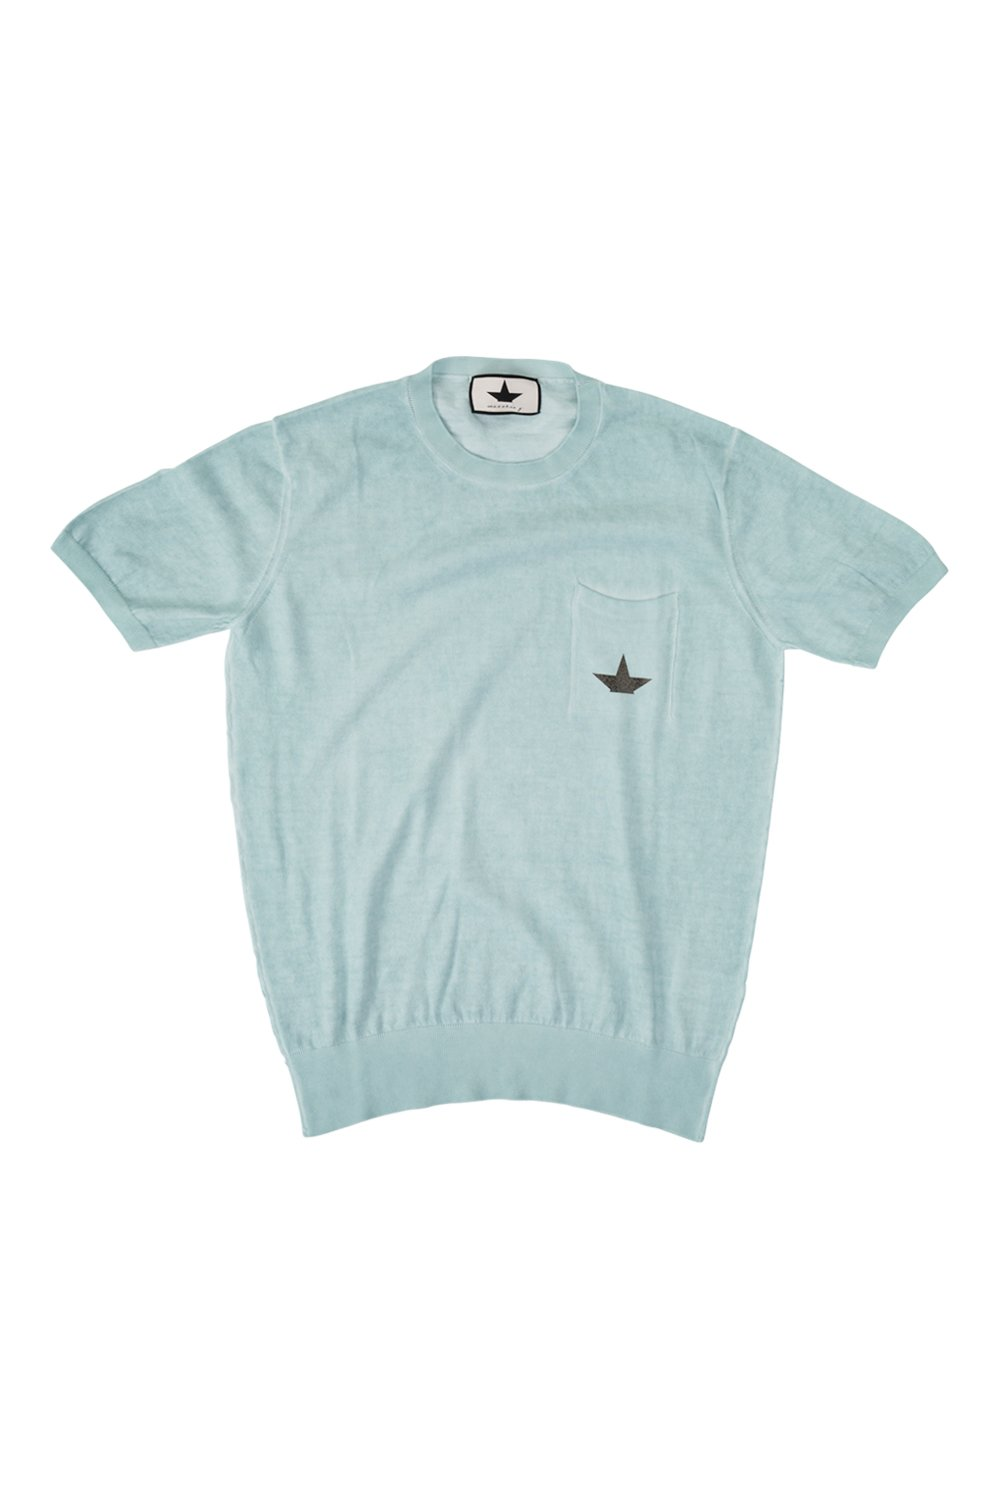 Short sleeve sweater with logo on breast pocket